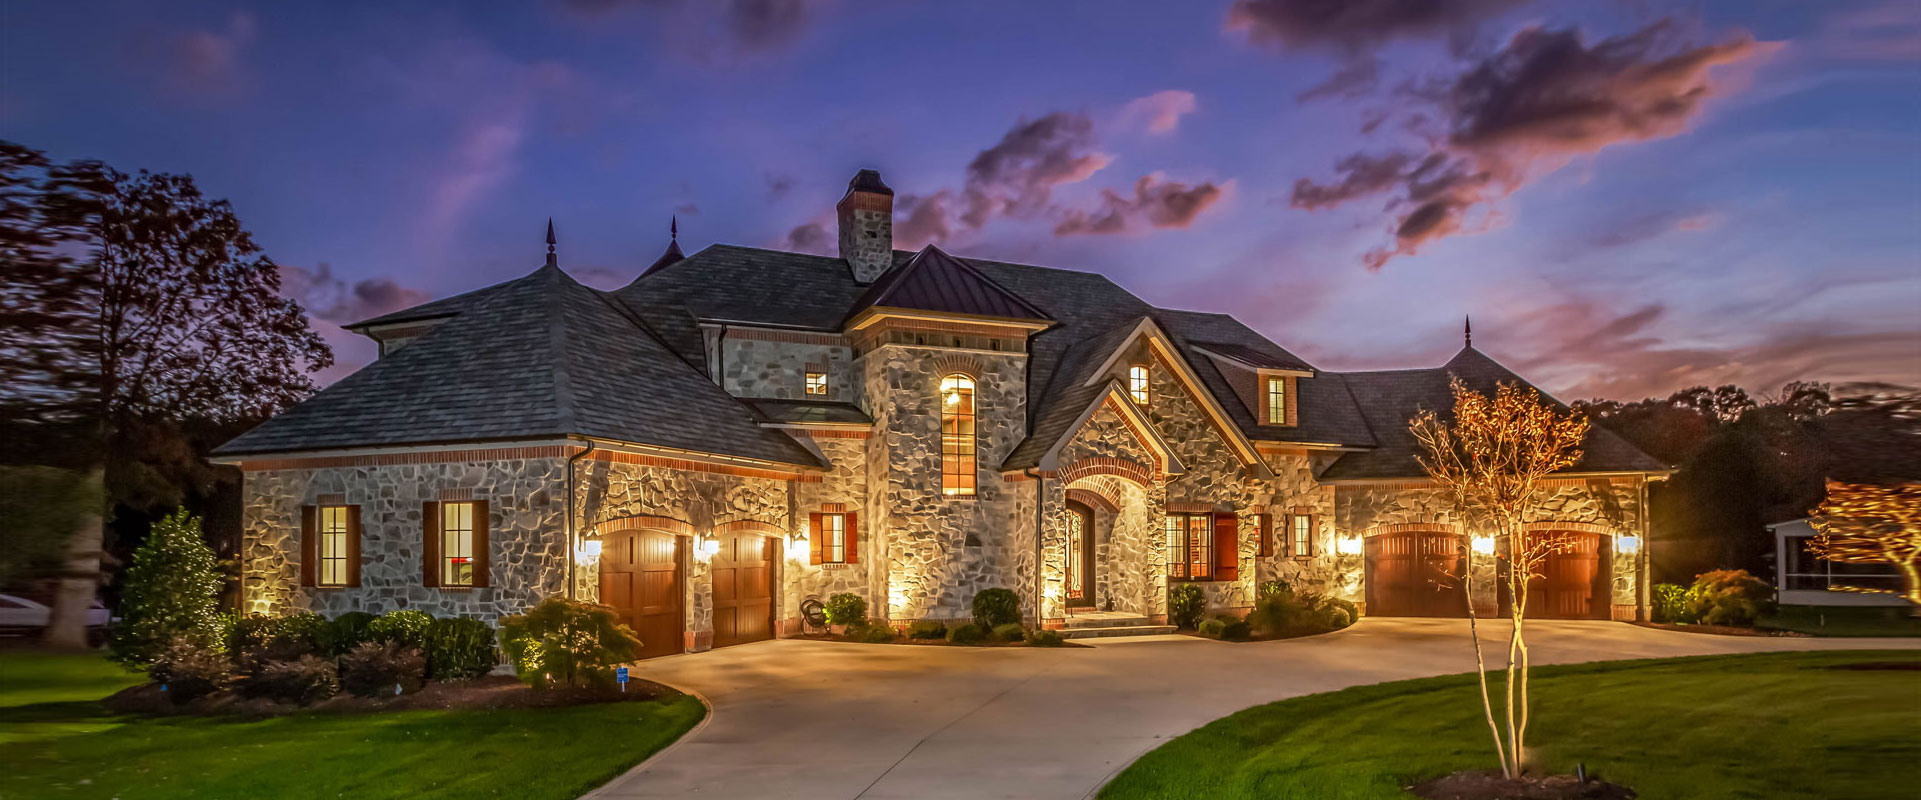 German-Tudor-Style-Mansion-Luxury-Real-Estte-251-Gainswood-Dr-Mooresville-NC